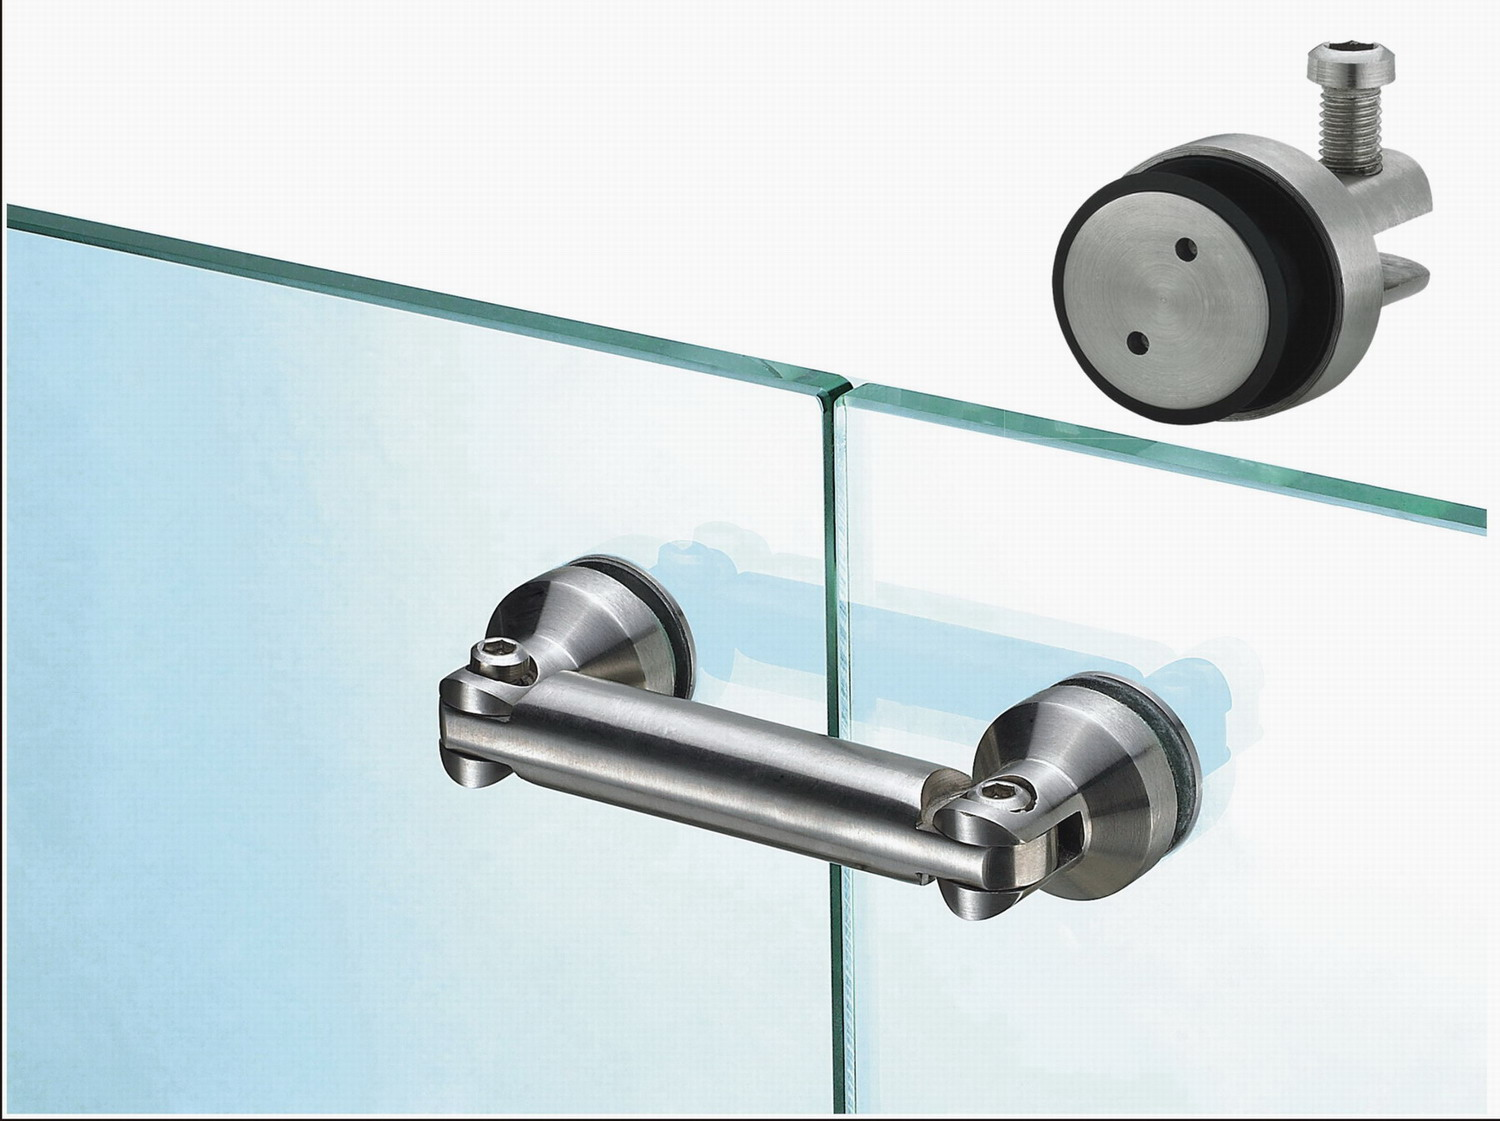 Stainless steel glass clamp for home finishing